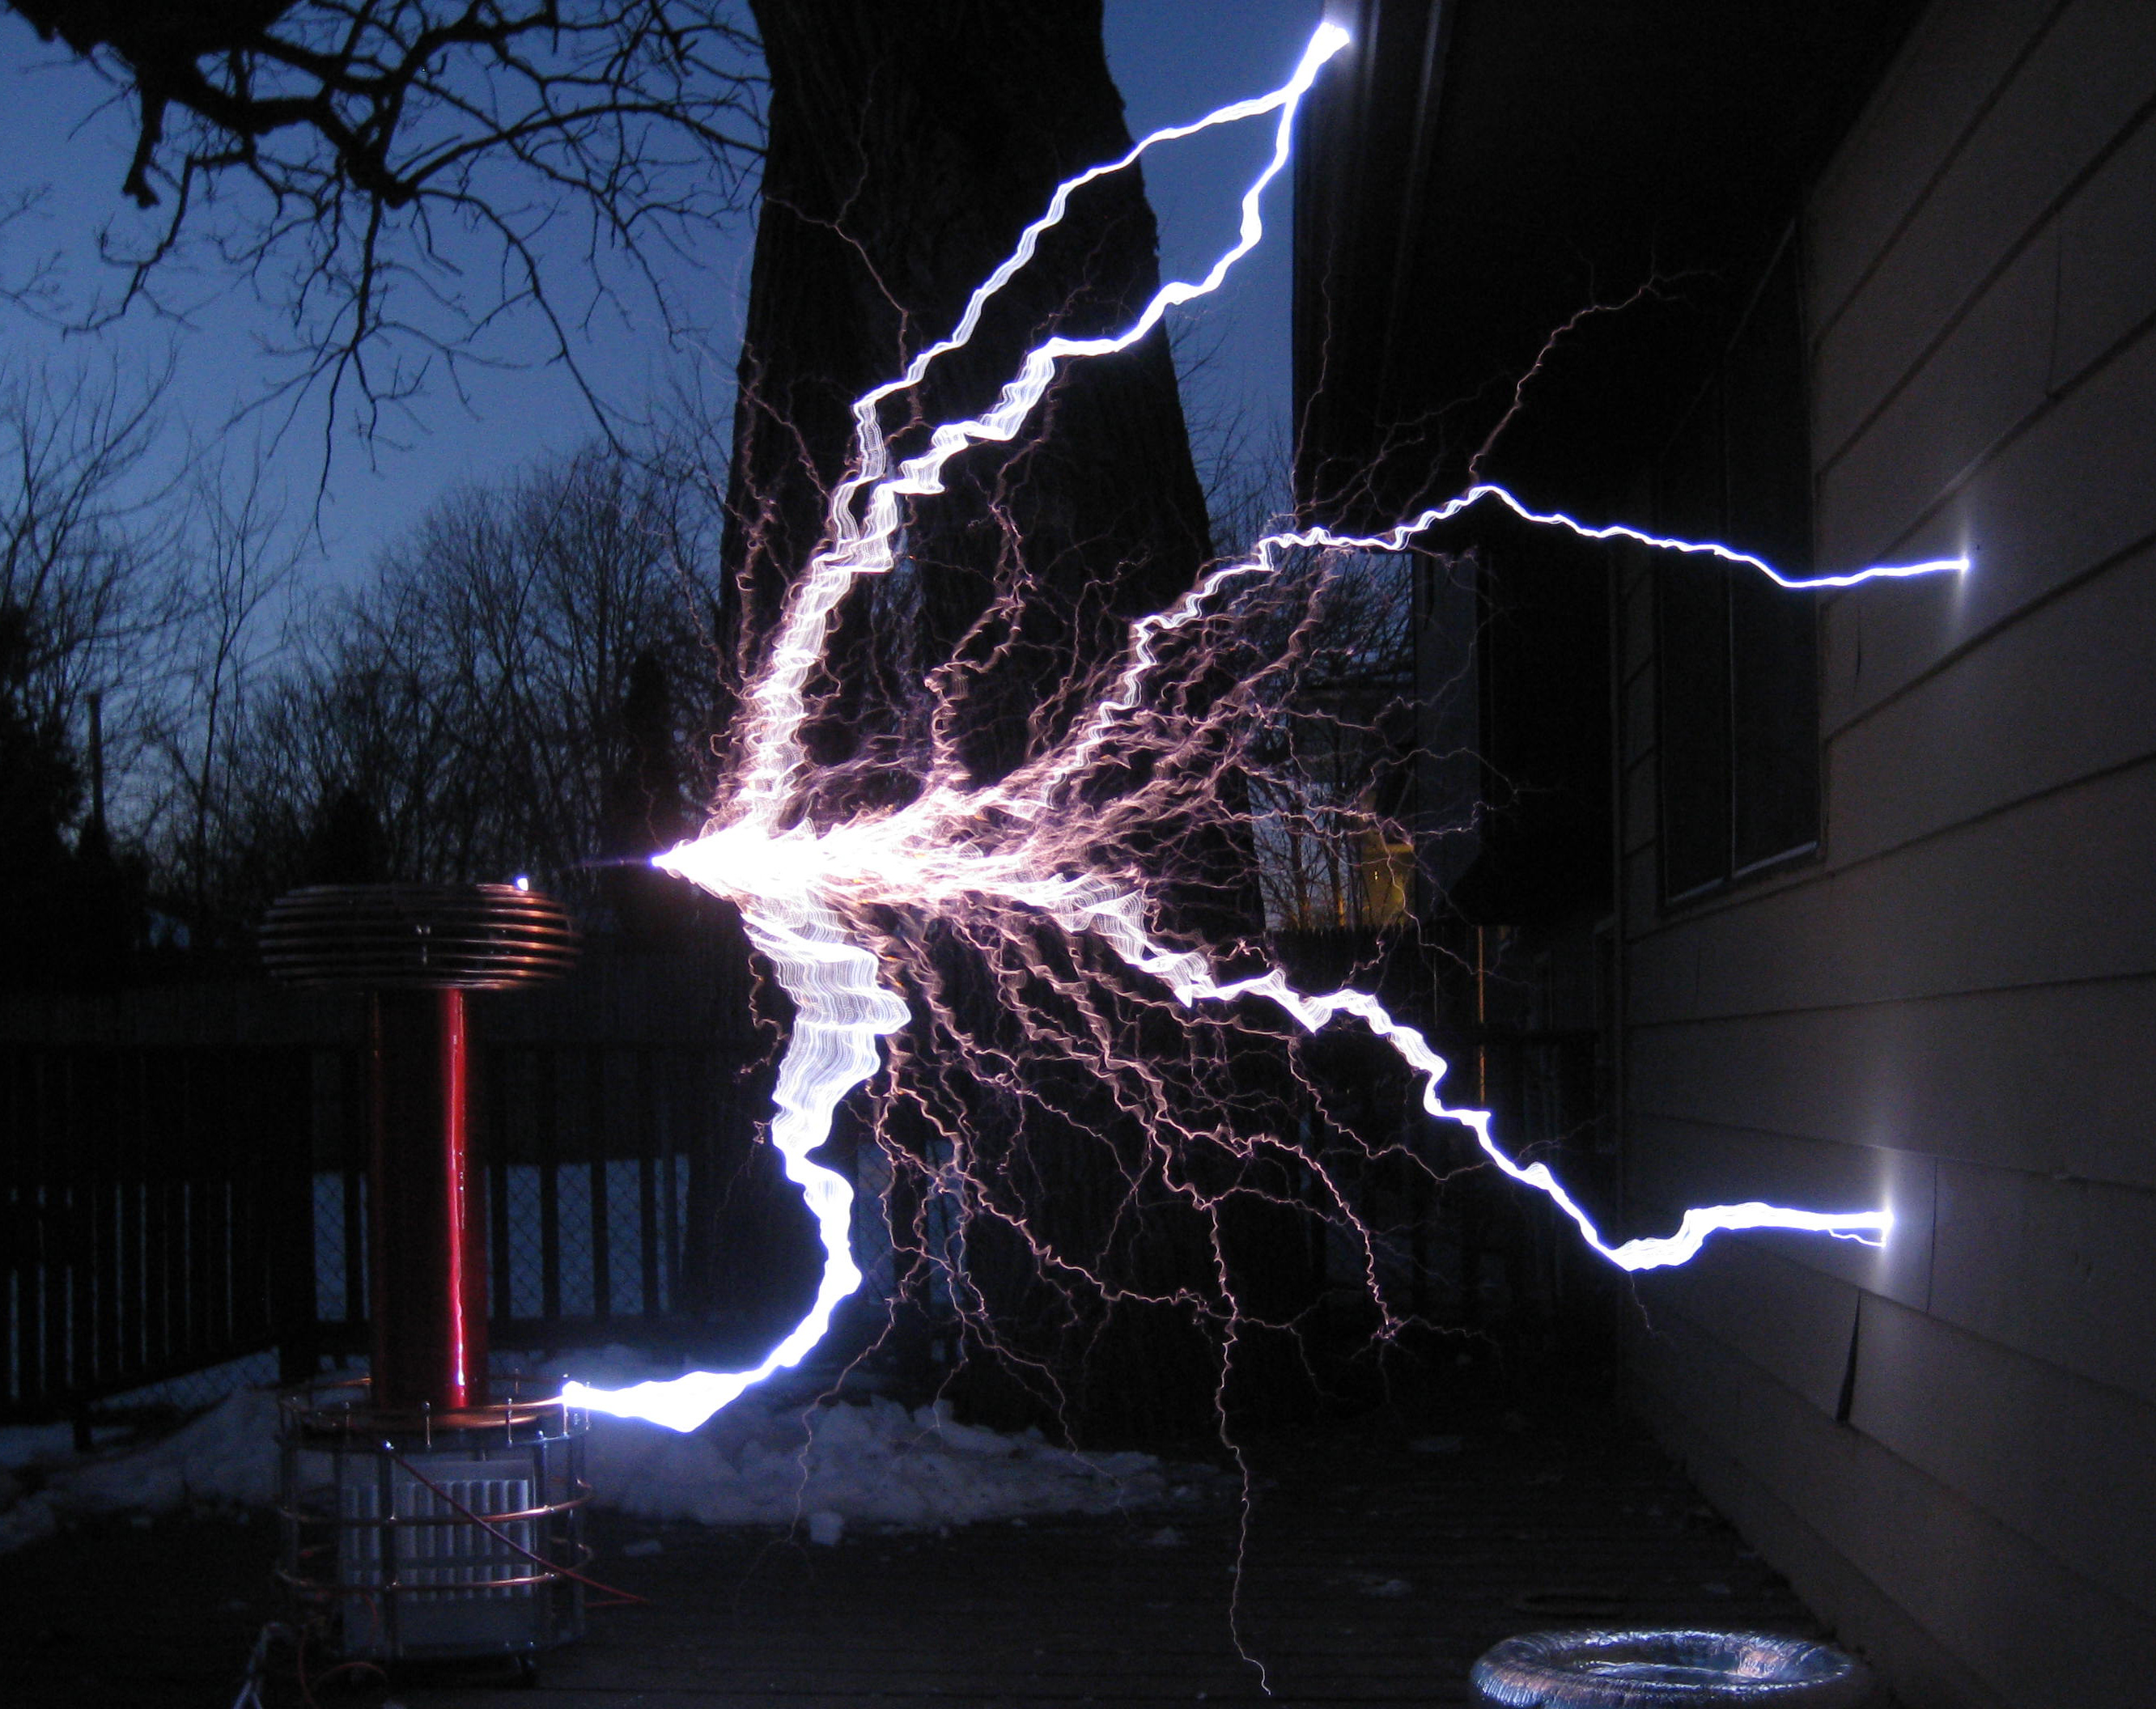 Zeusaphone Tesla coil Z-75 arcing to building with 6 foot sparks